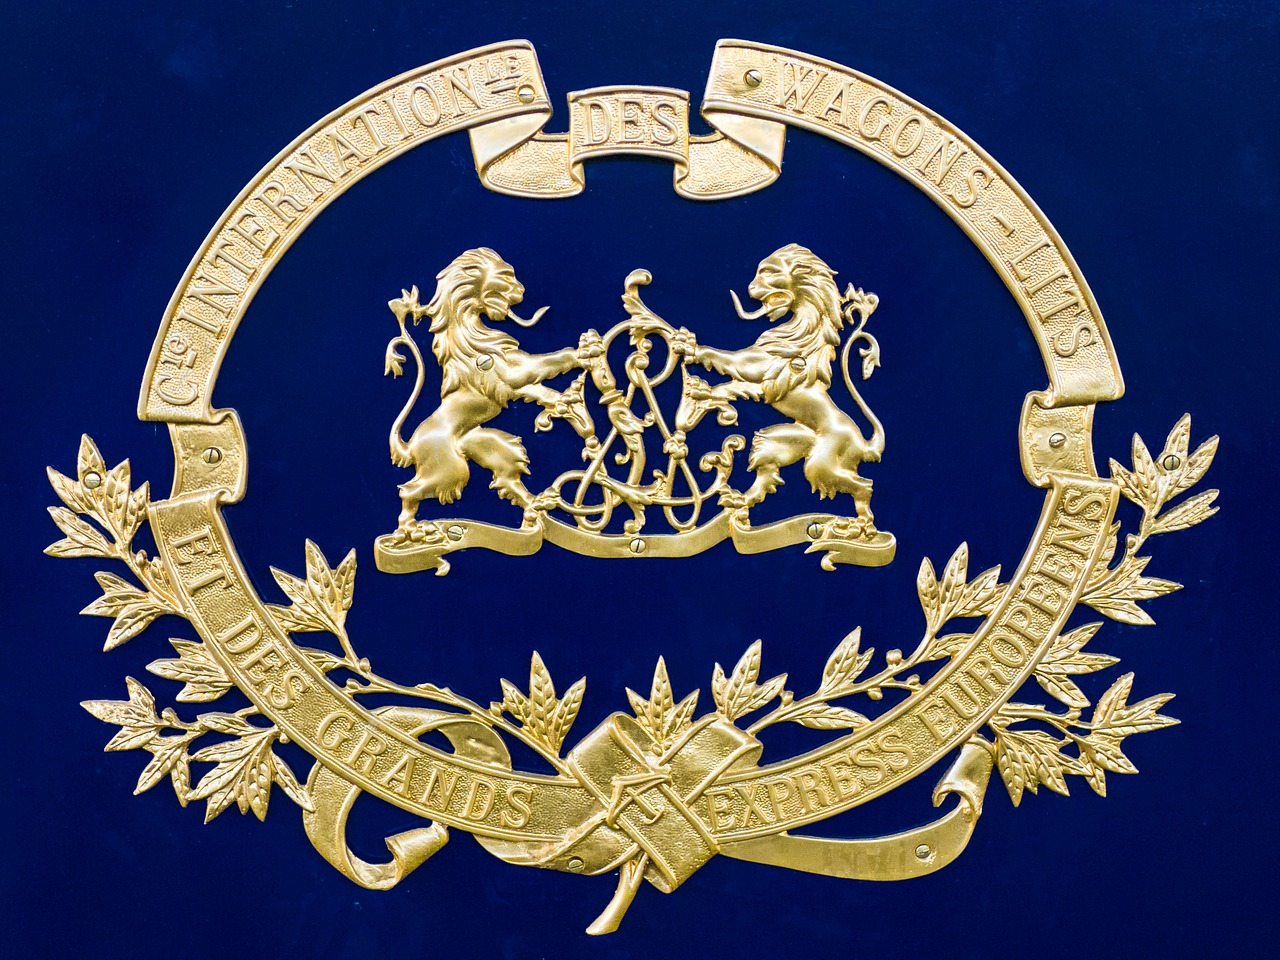 royal coat of arms valuable free photo